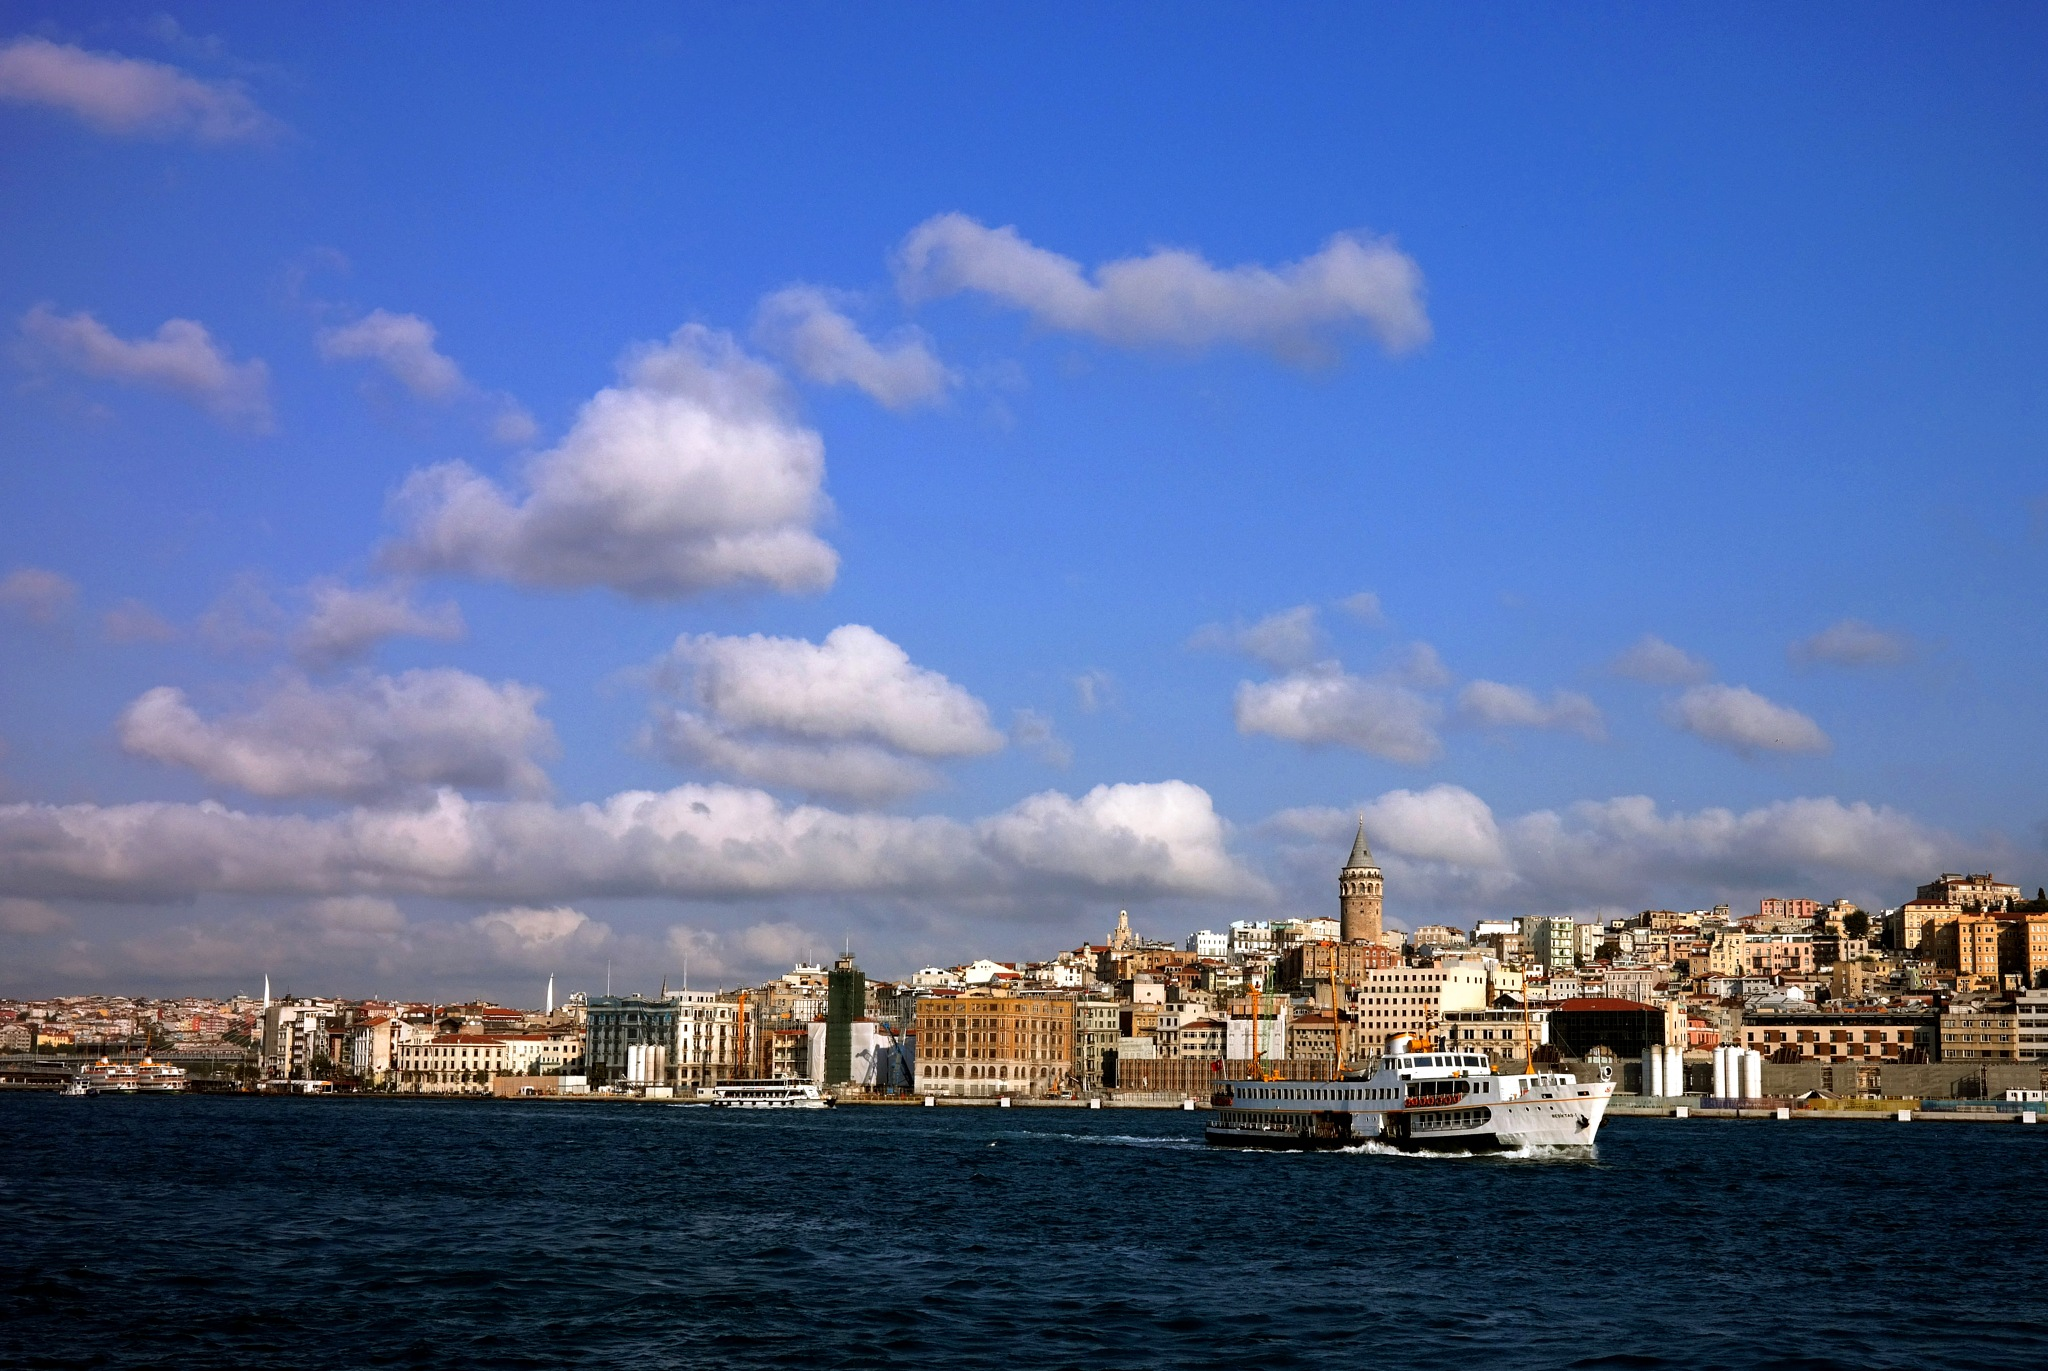 clouds over the city in this morning by Muhsin Özcan